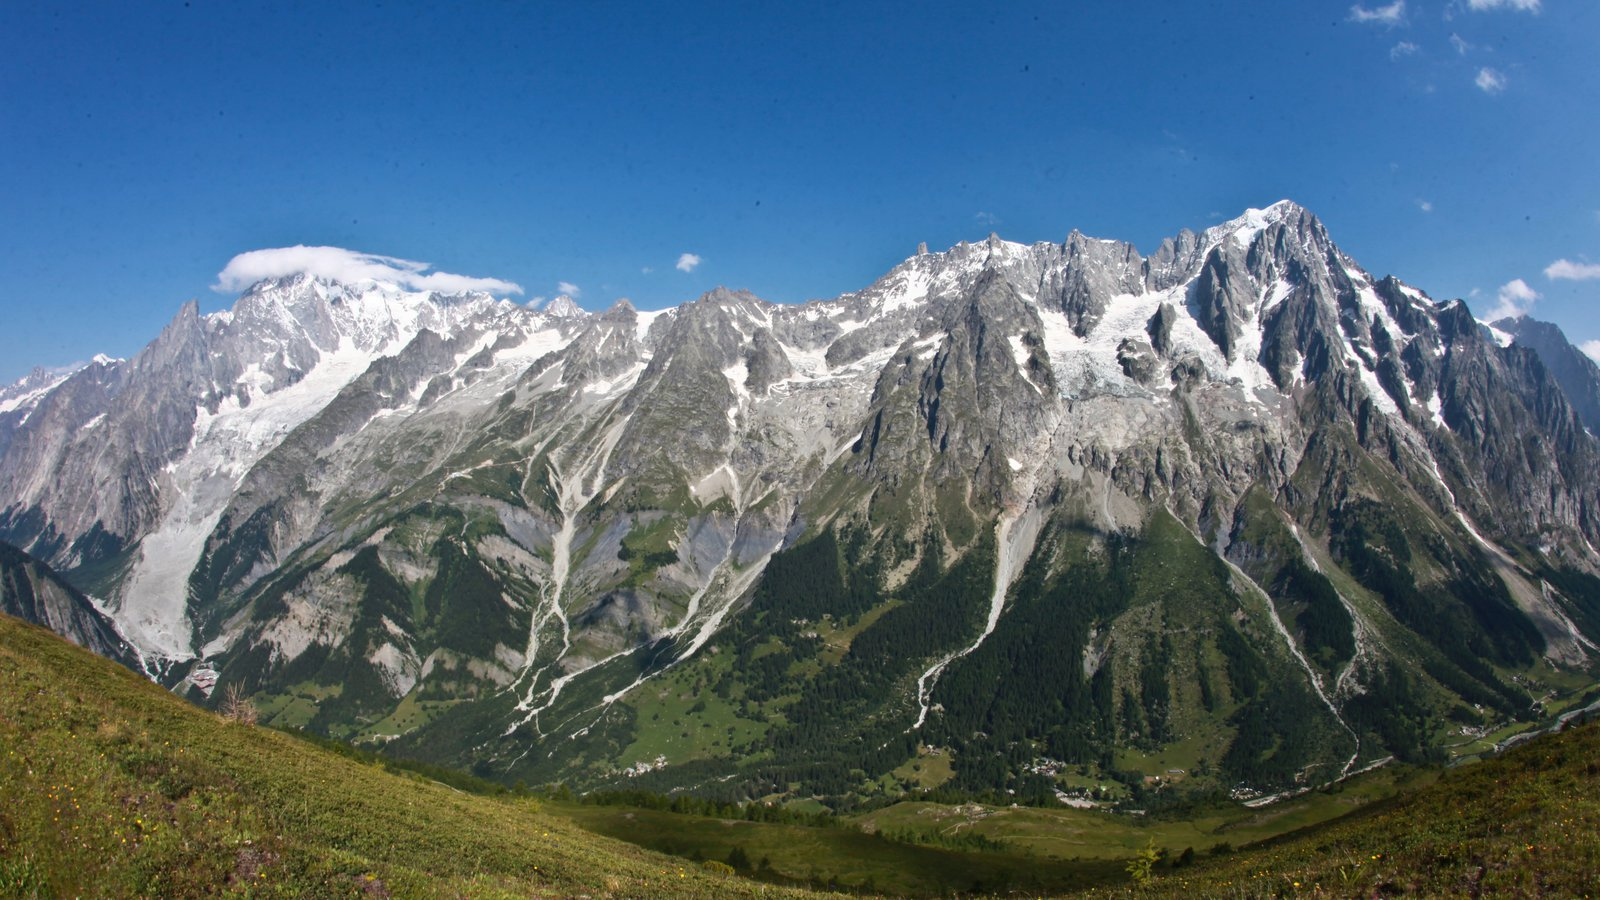 Courmayeur featuring mountains and snow